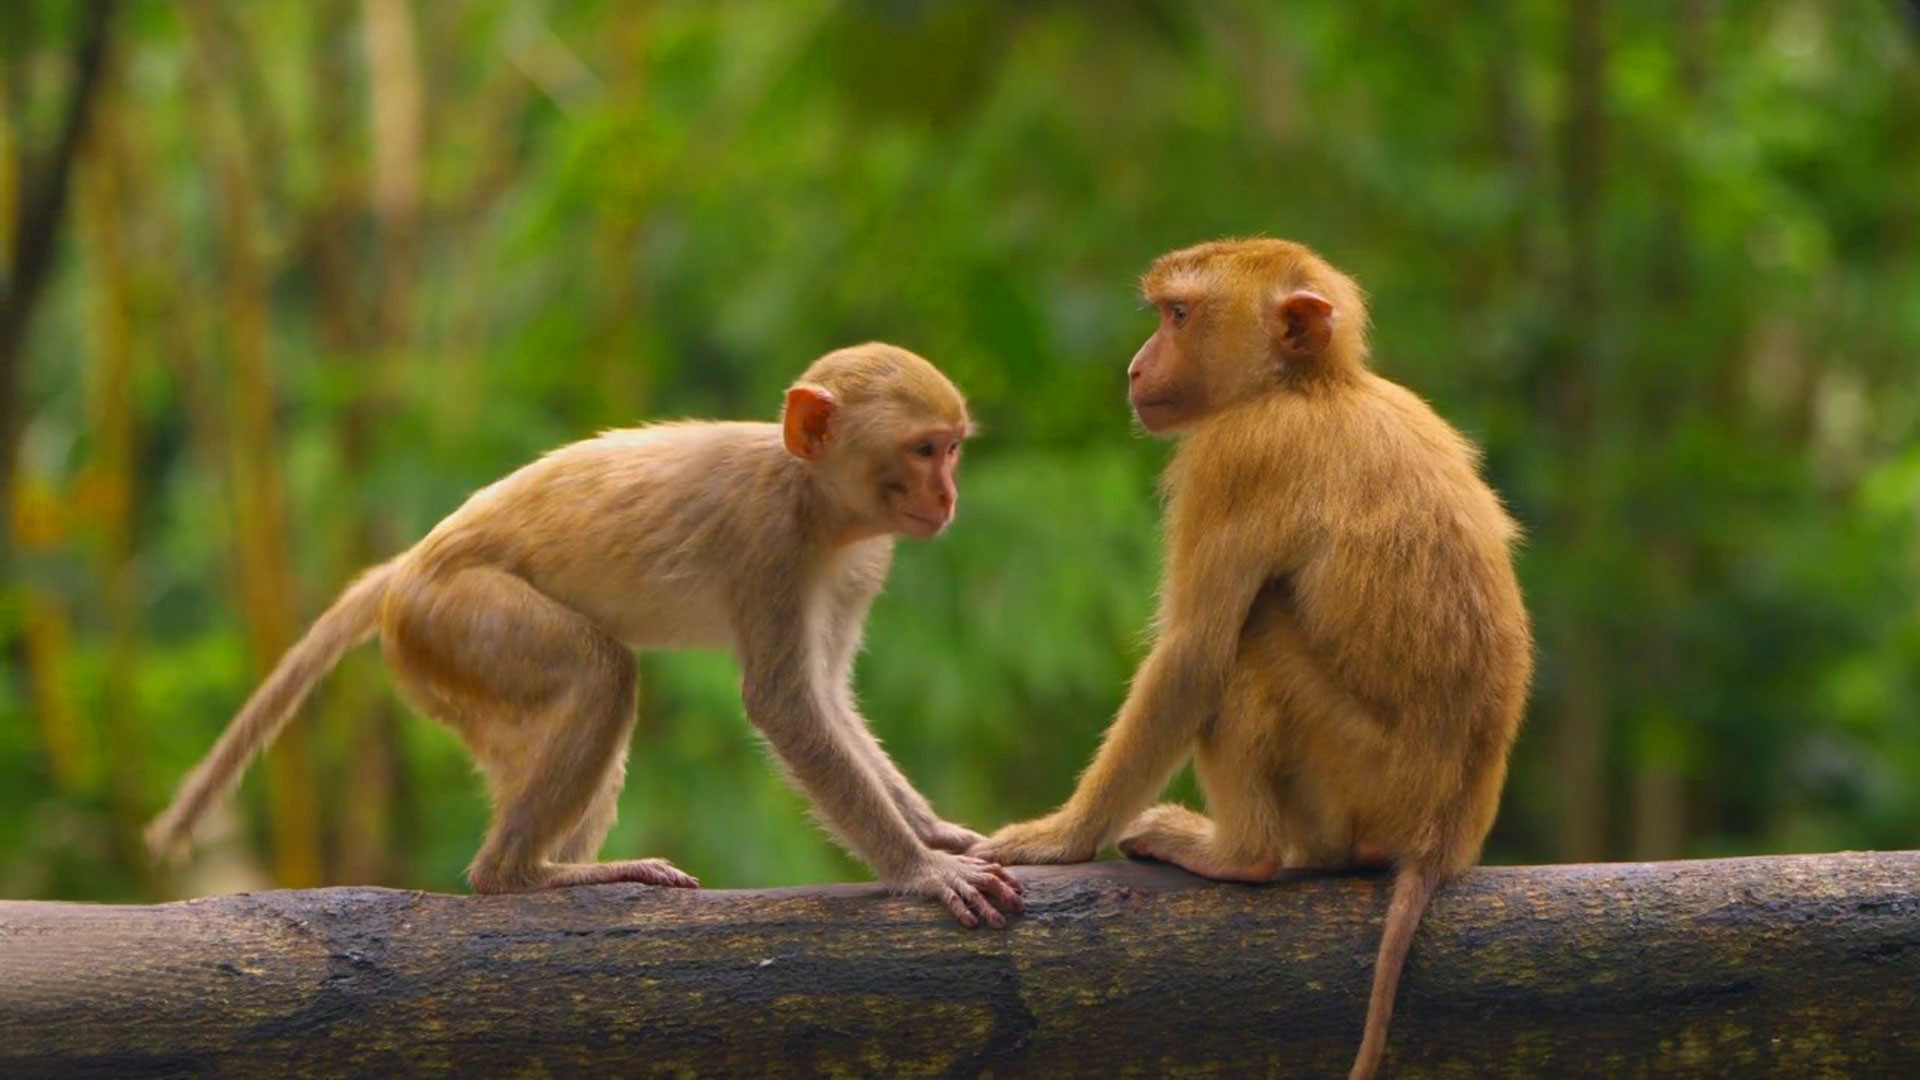 1920x1080 hd pics photos stunning attractive animals monkeys new wildlife photography  hd desktop background wallpaper